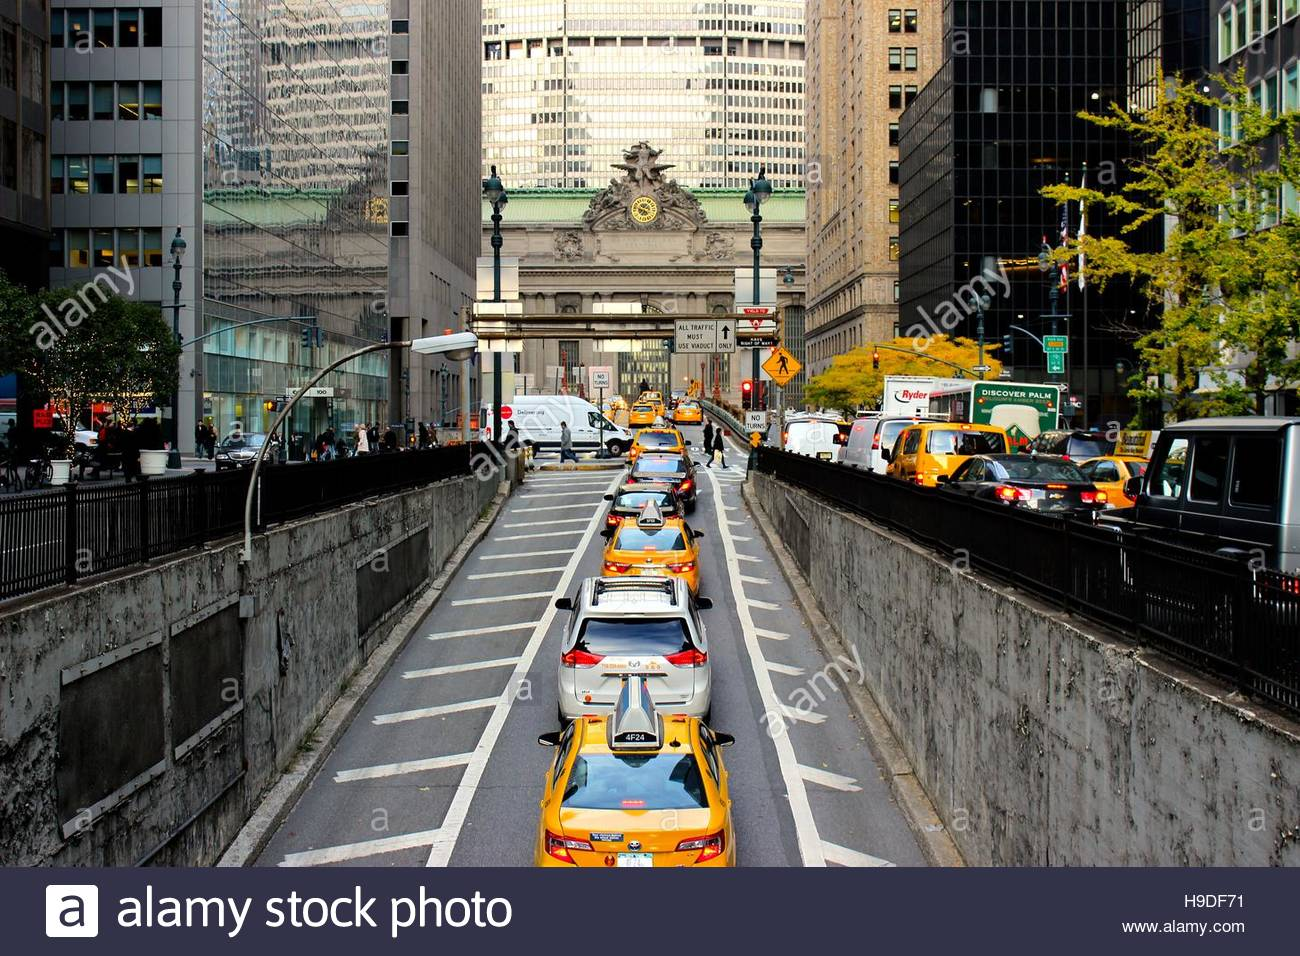 Taxis outside of Grand Central Station in NYC - Stock Image